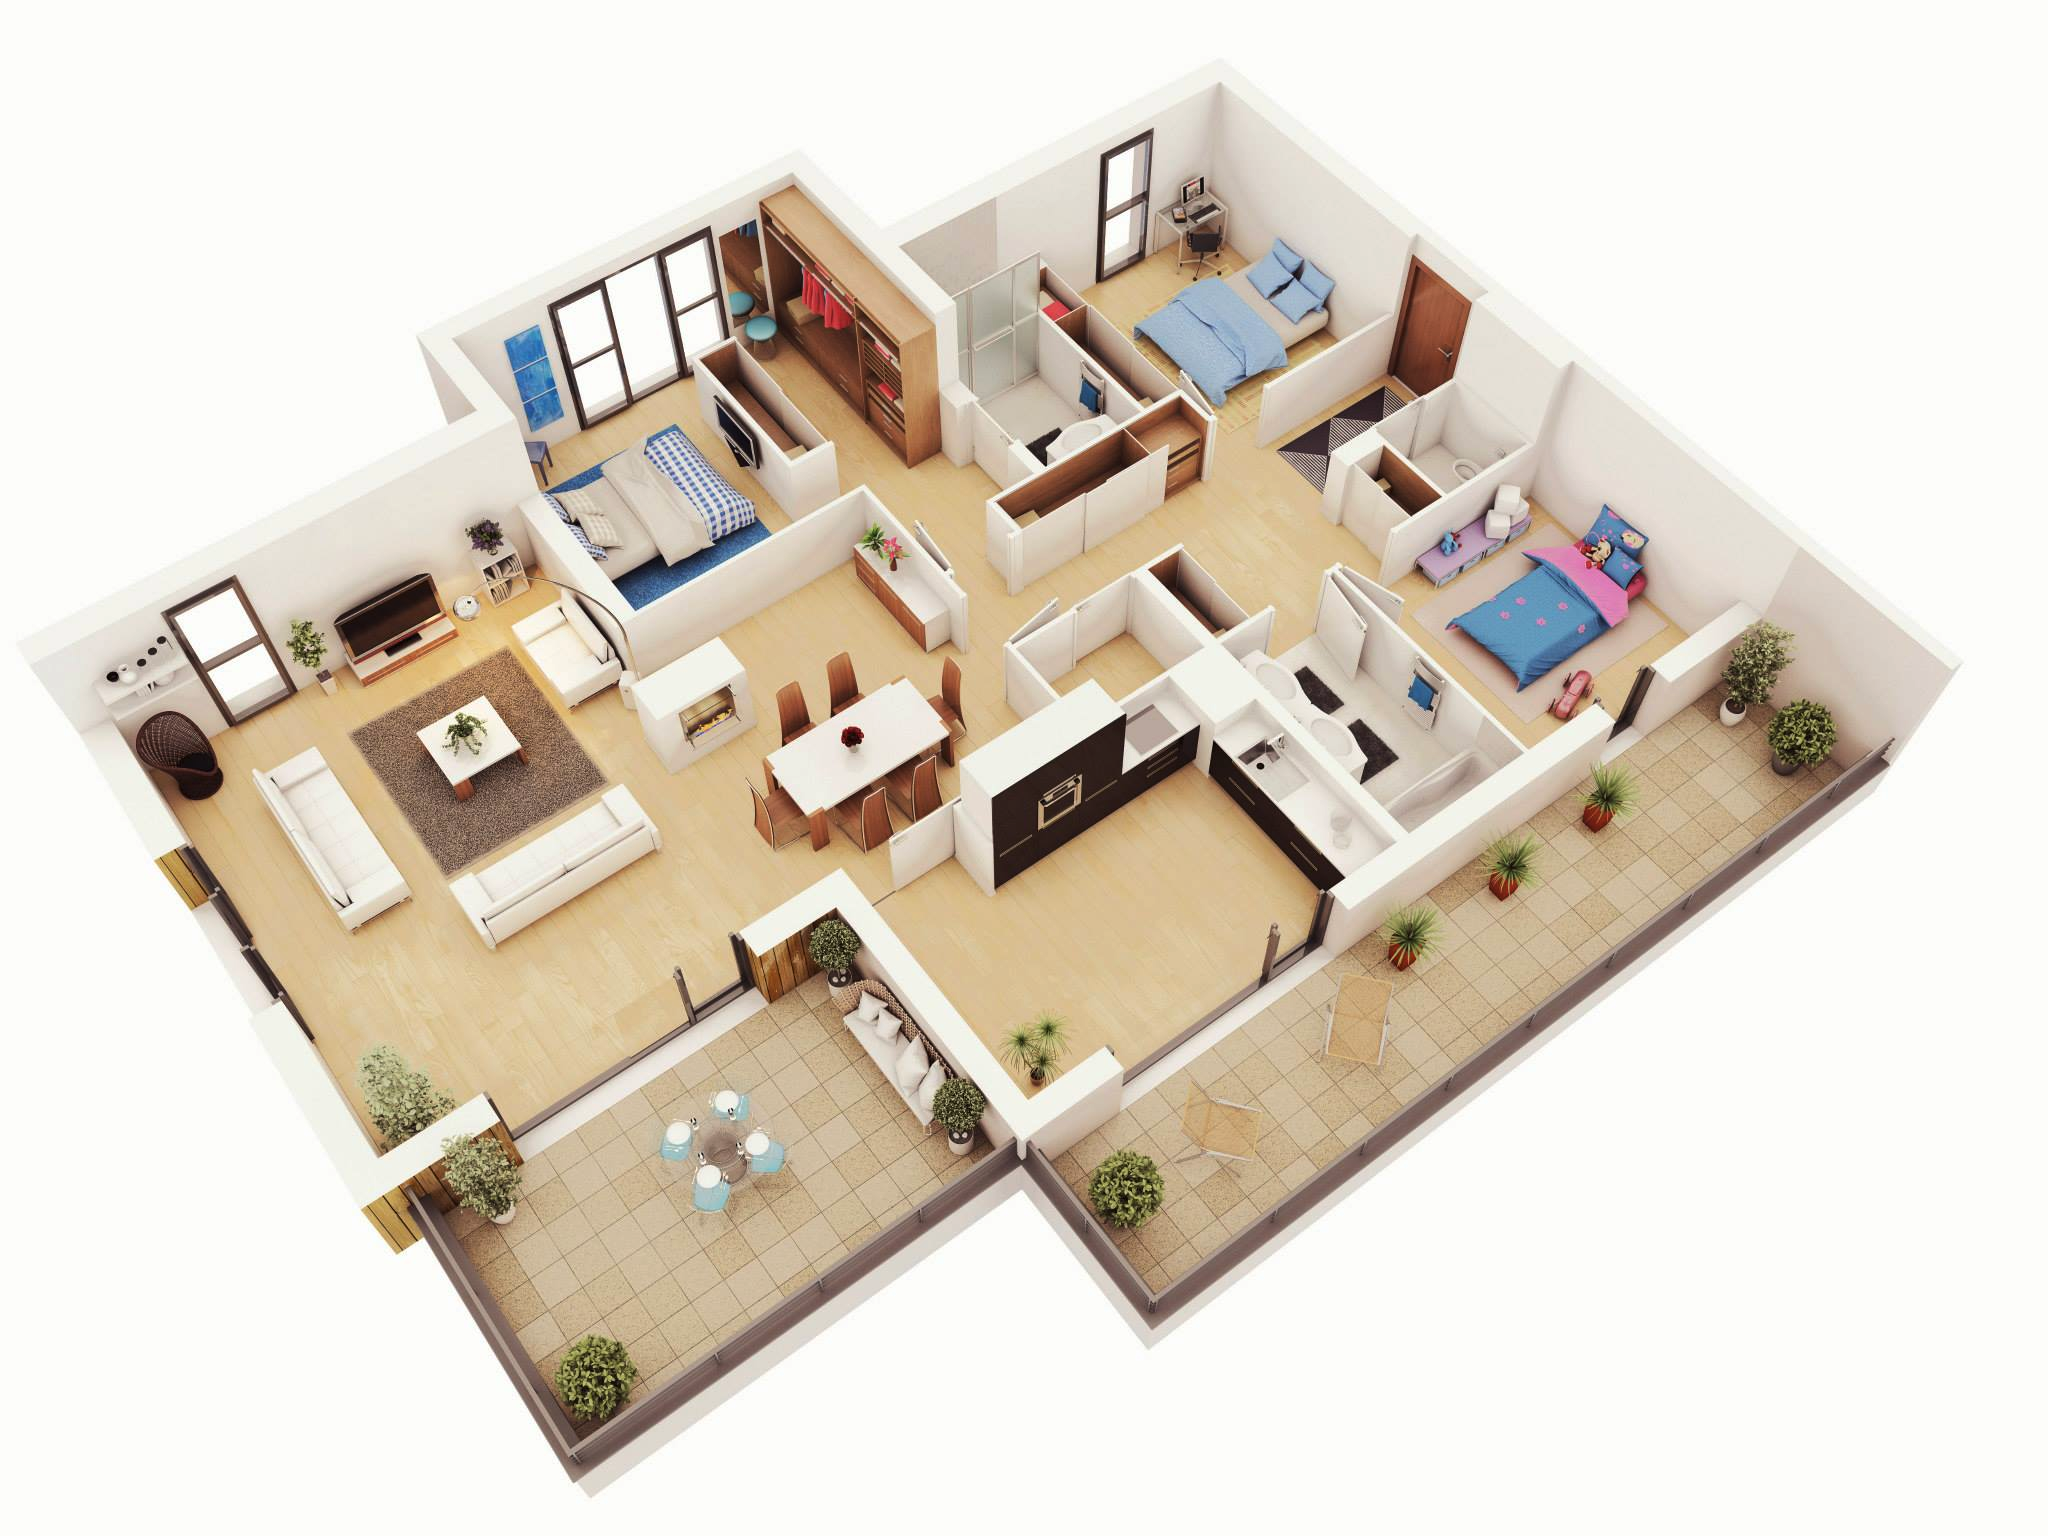 25 more 3 bedroom 3d floor plans architecture design 3d architectural floor plans